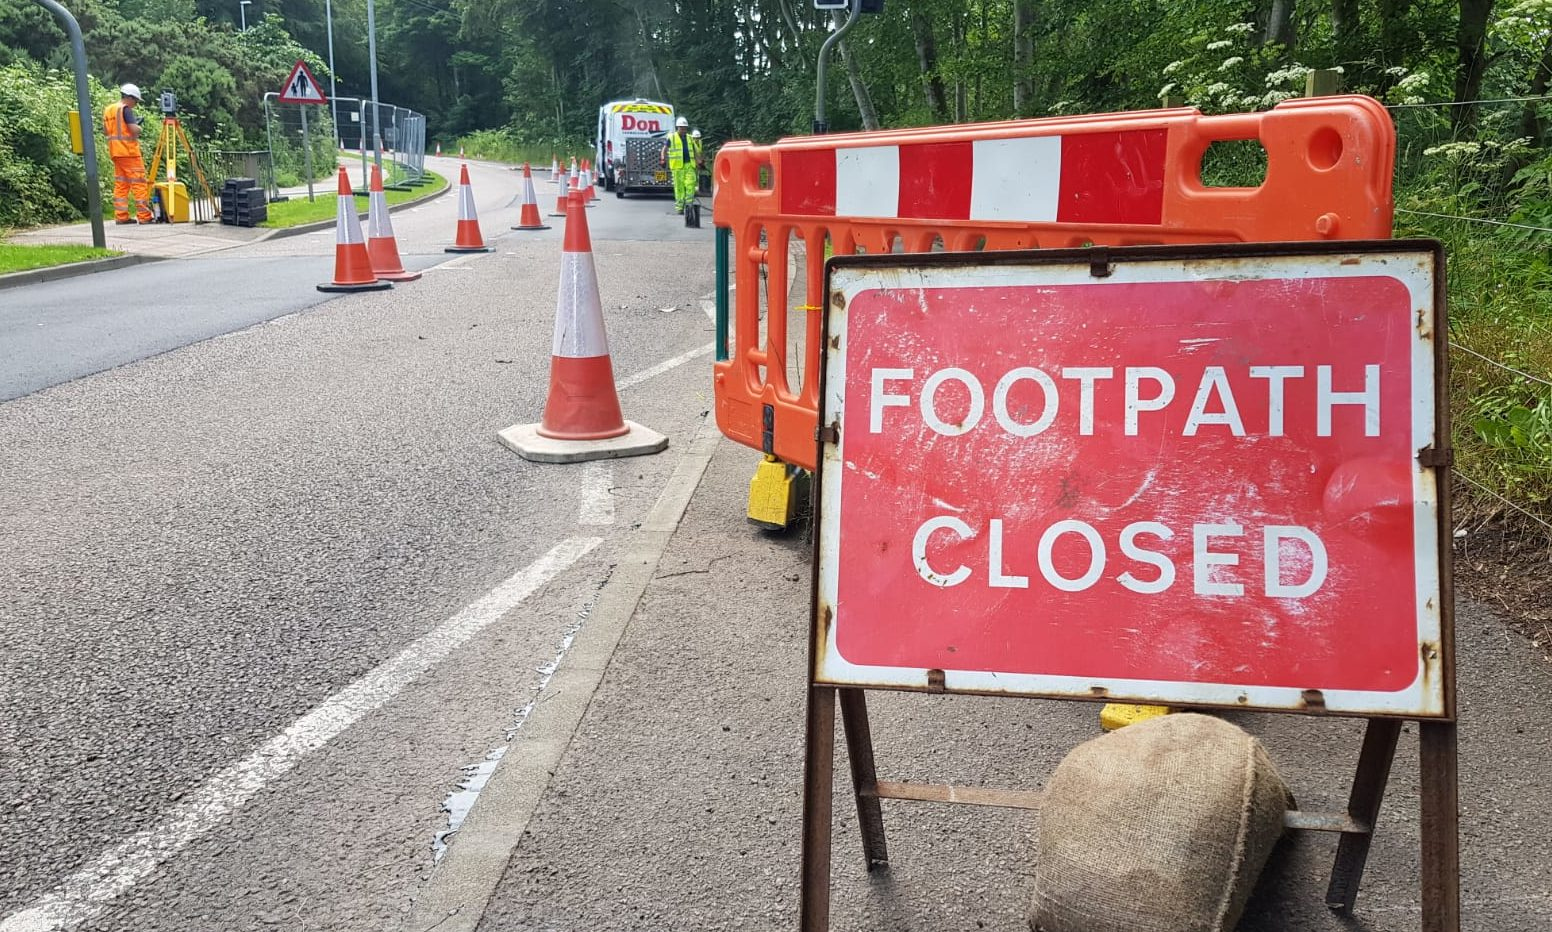 The road closure in Stonehaven.